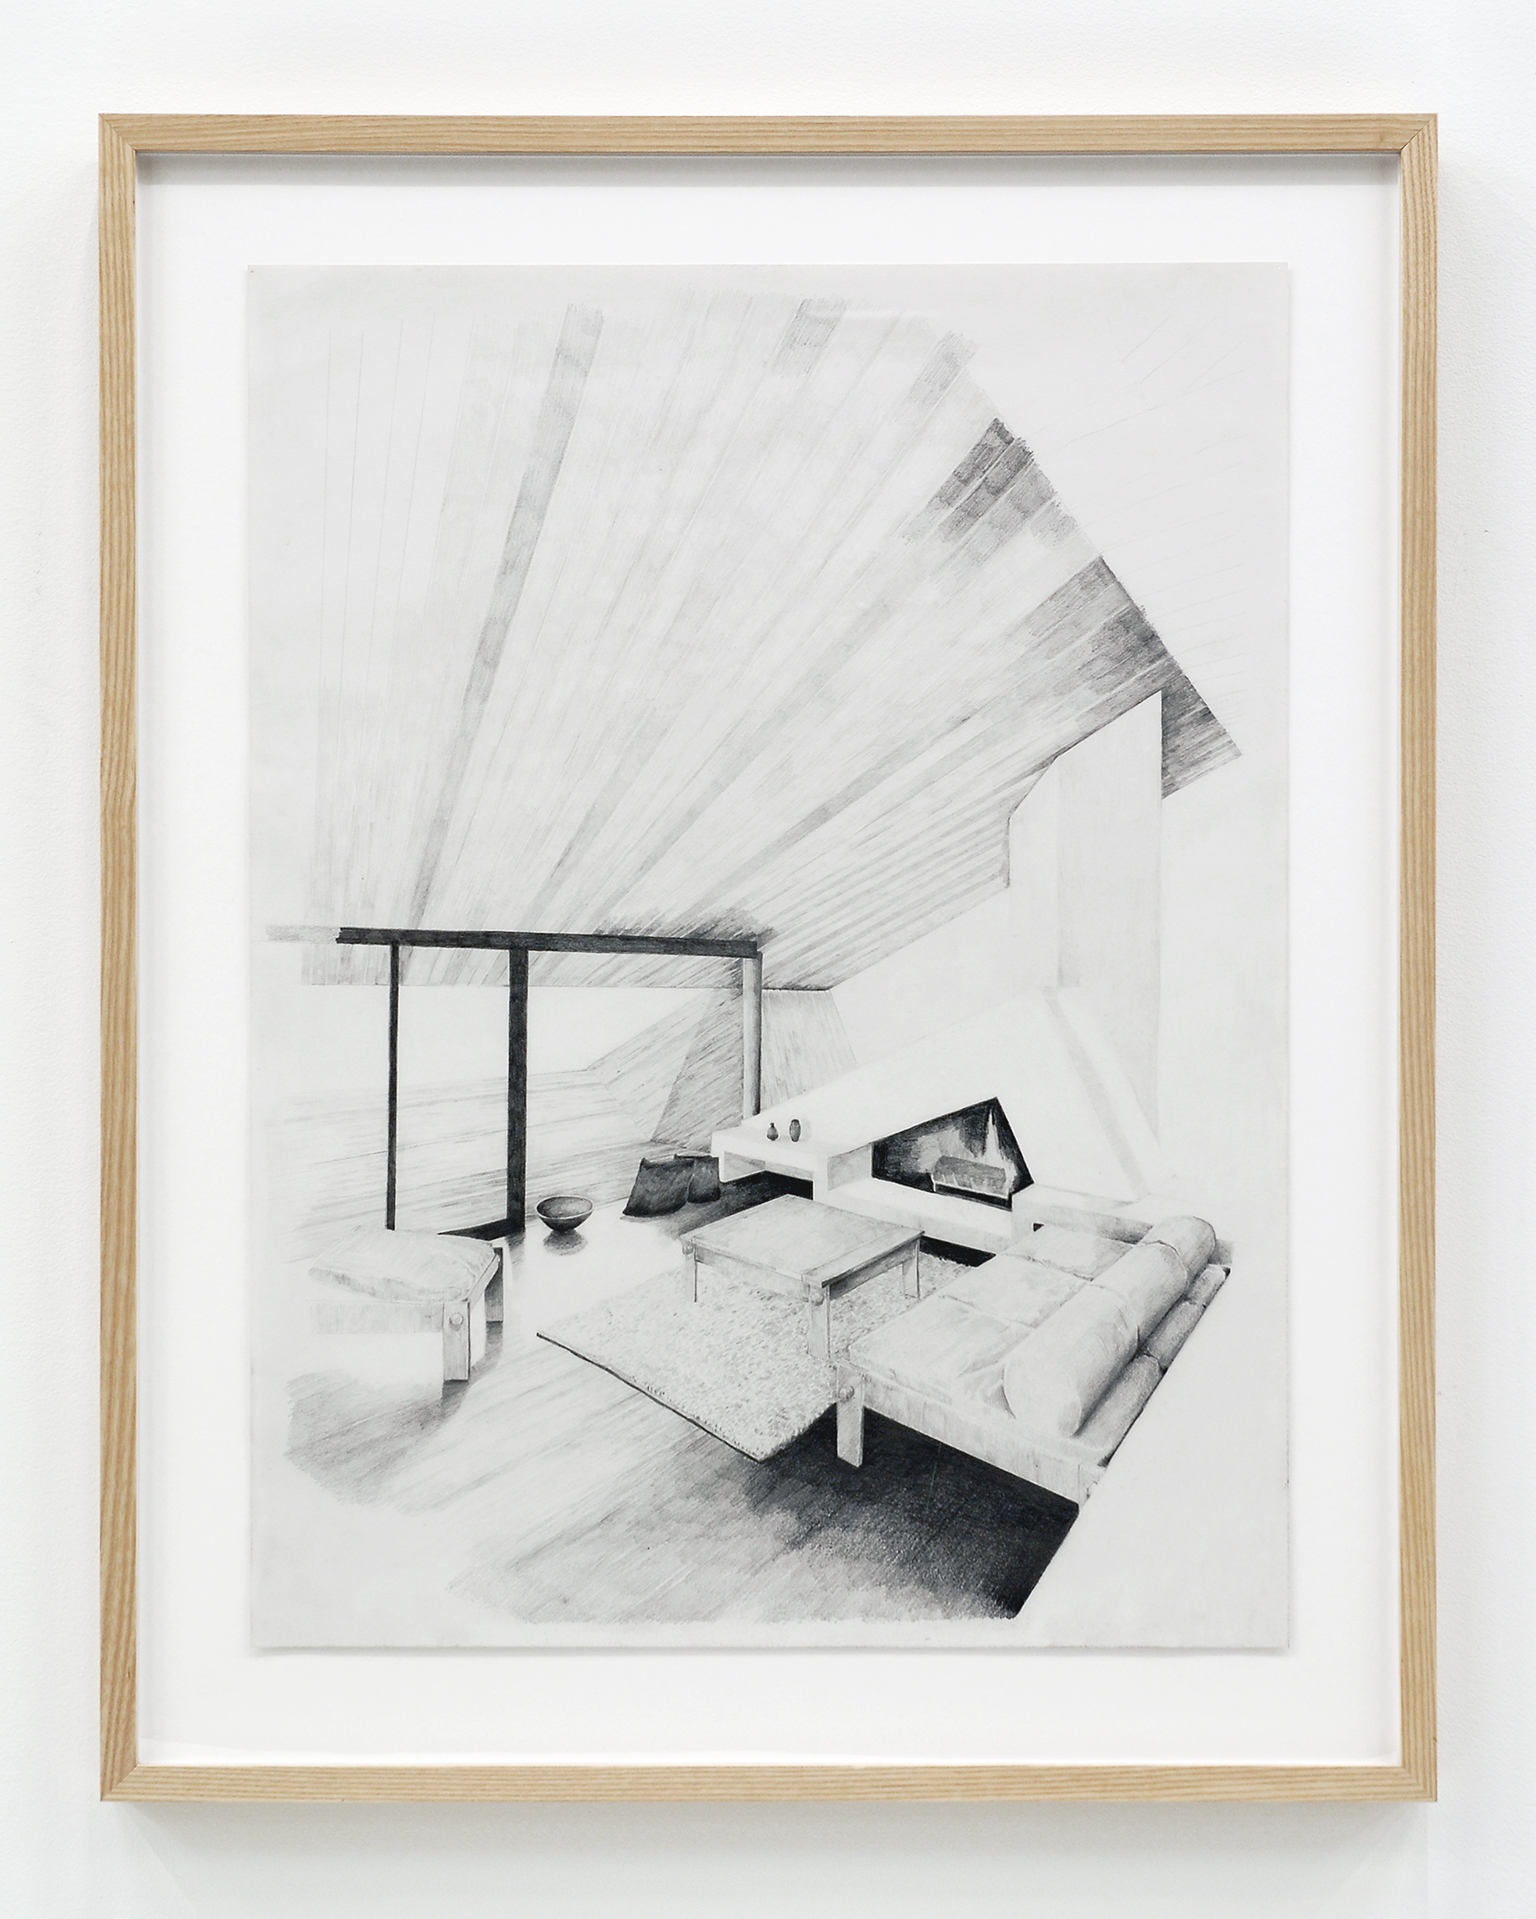 ​Alex Morrison, The Poetics of Grey (No. 5), 2007, graphite on paper, 29 x 23 in. (74 x 58 cm) by